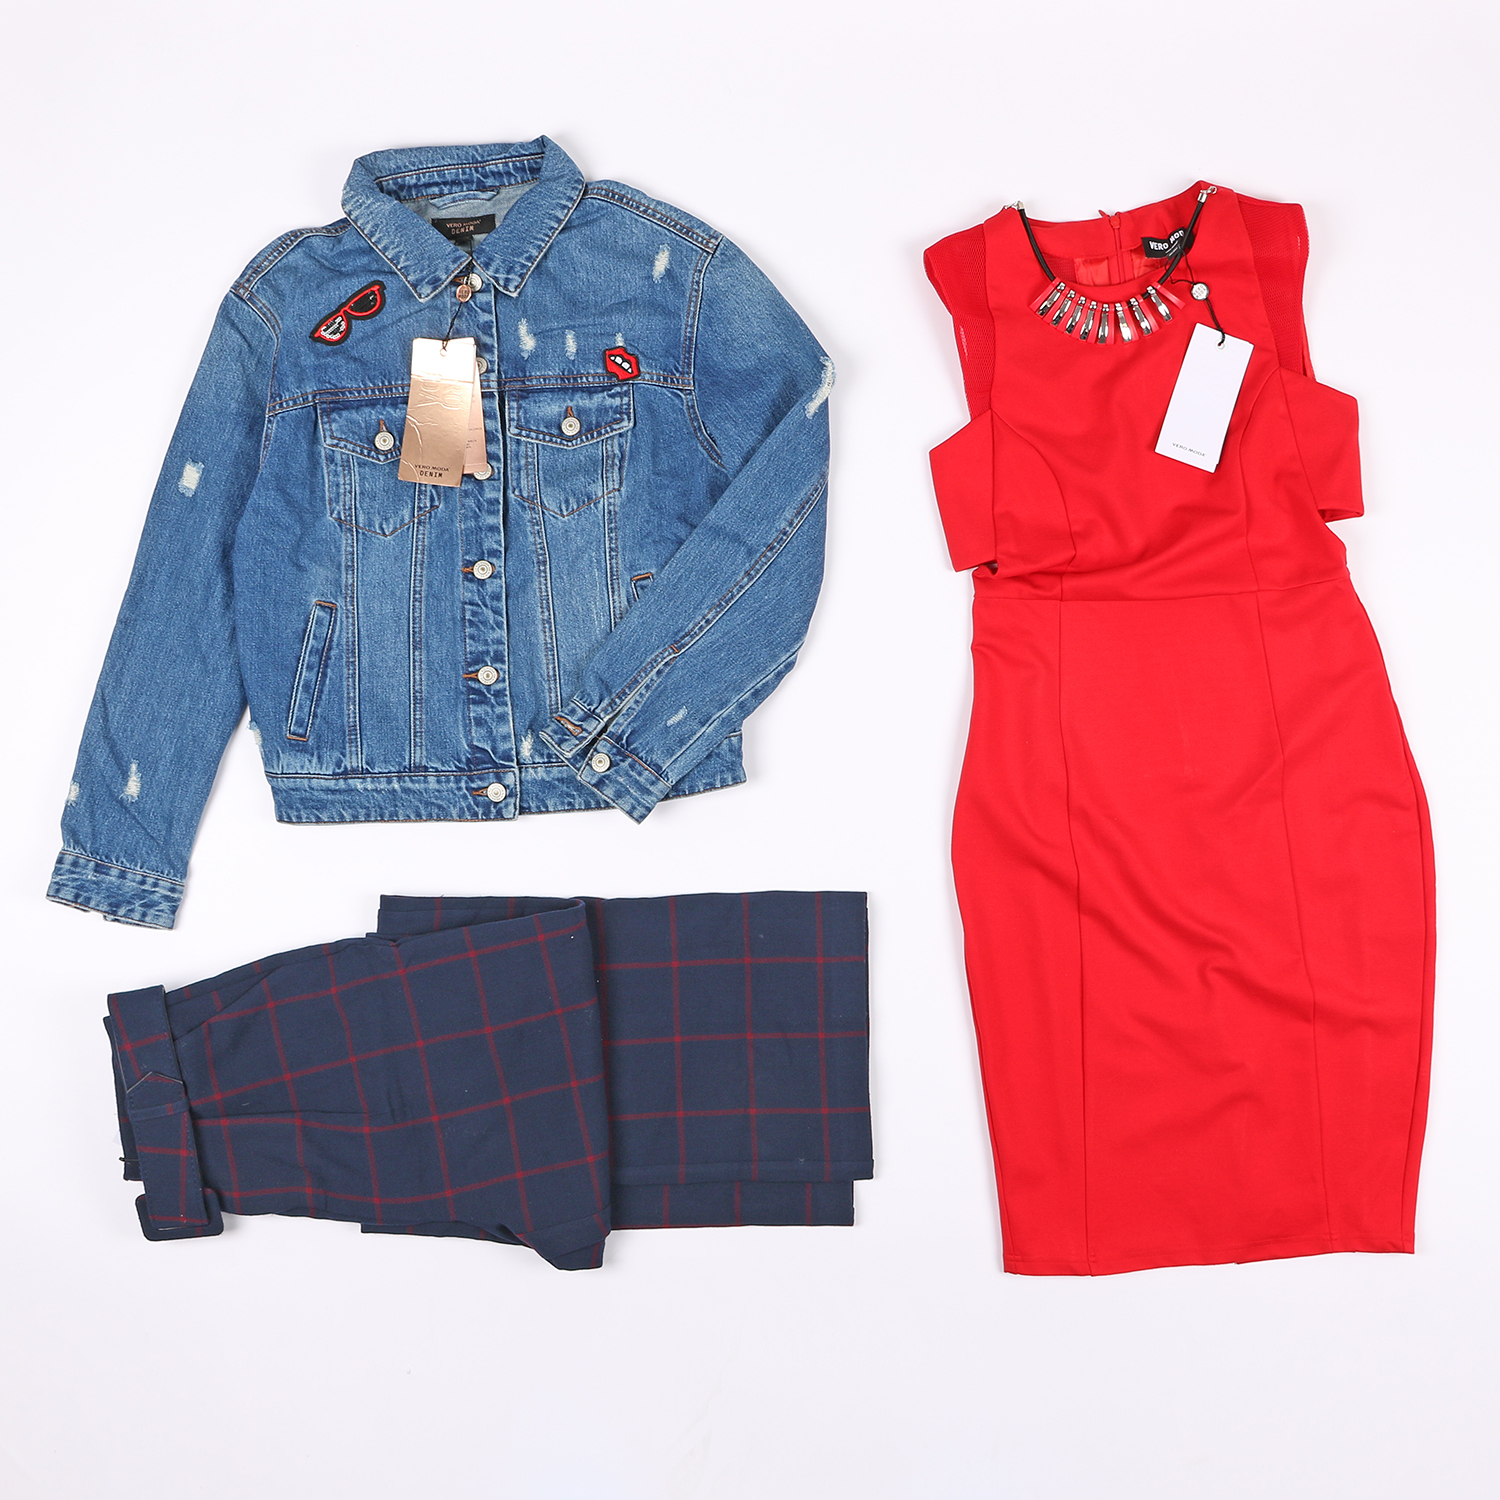 Stock: Only - Wholesale Clothing Outlet